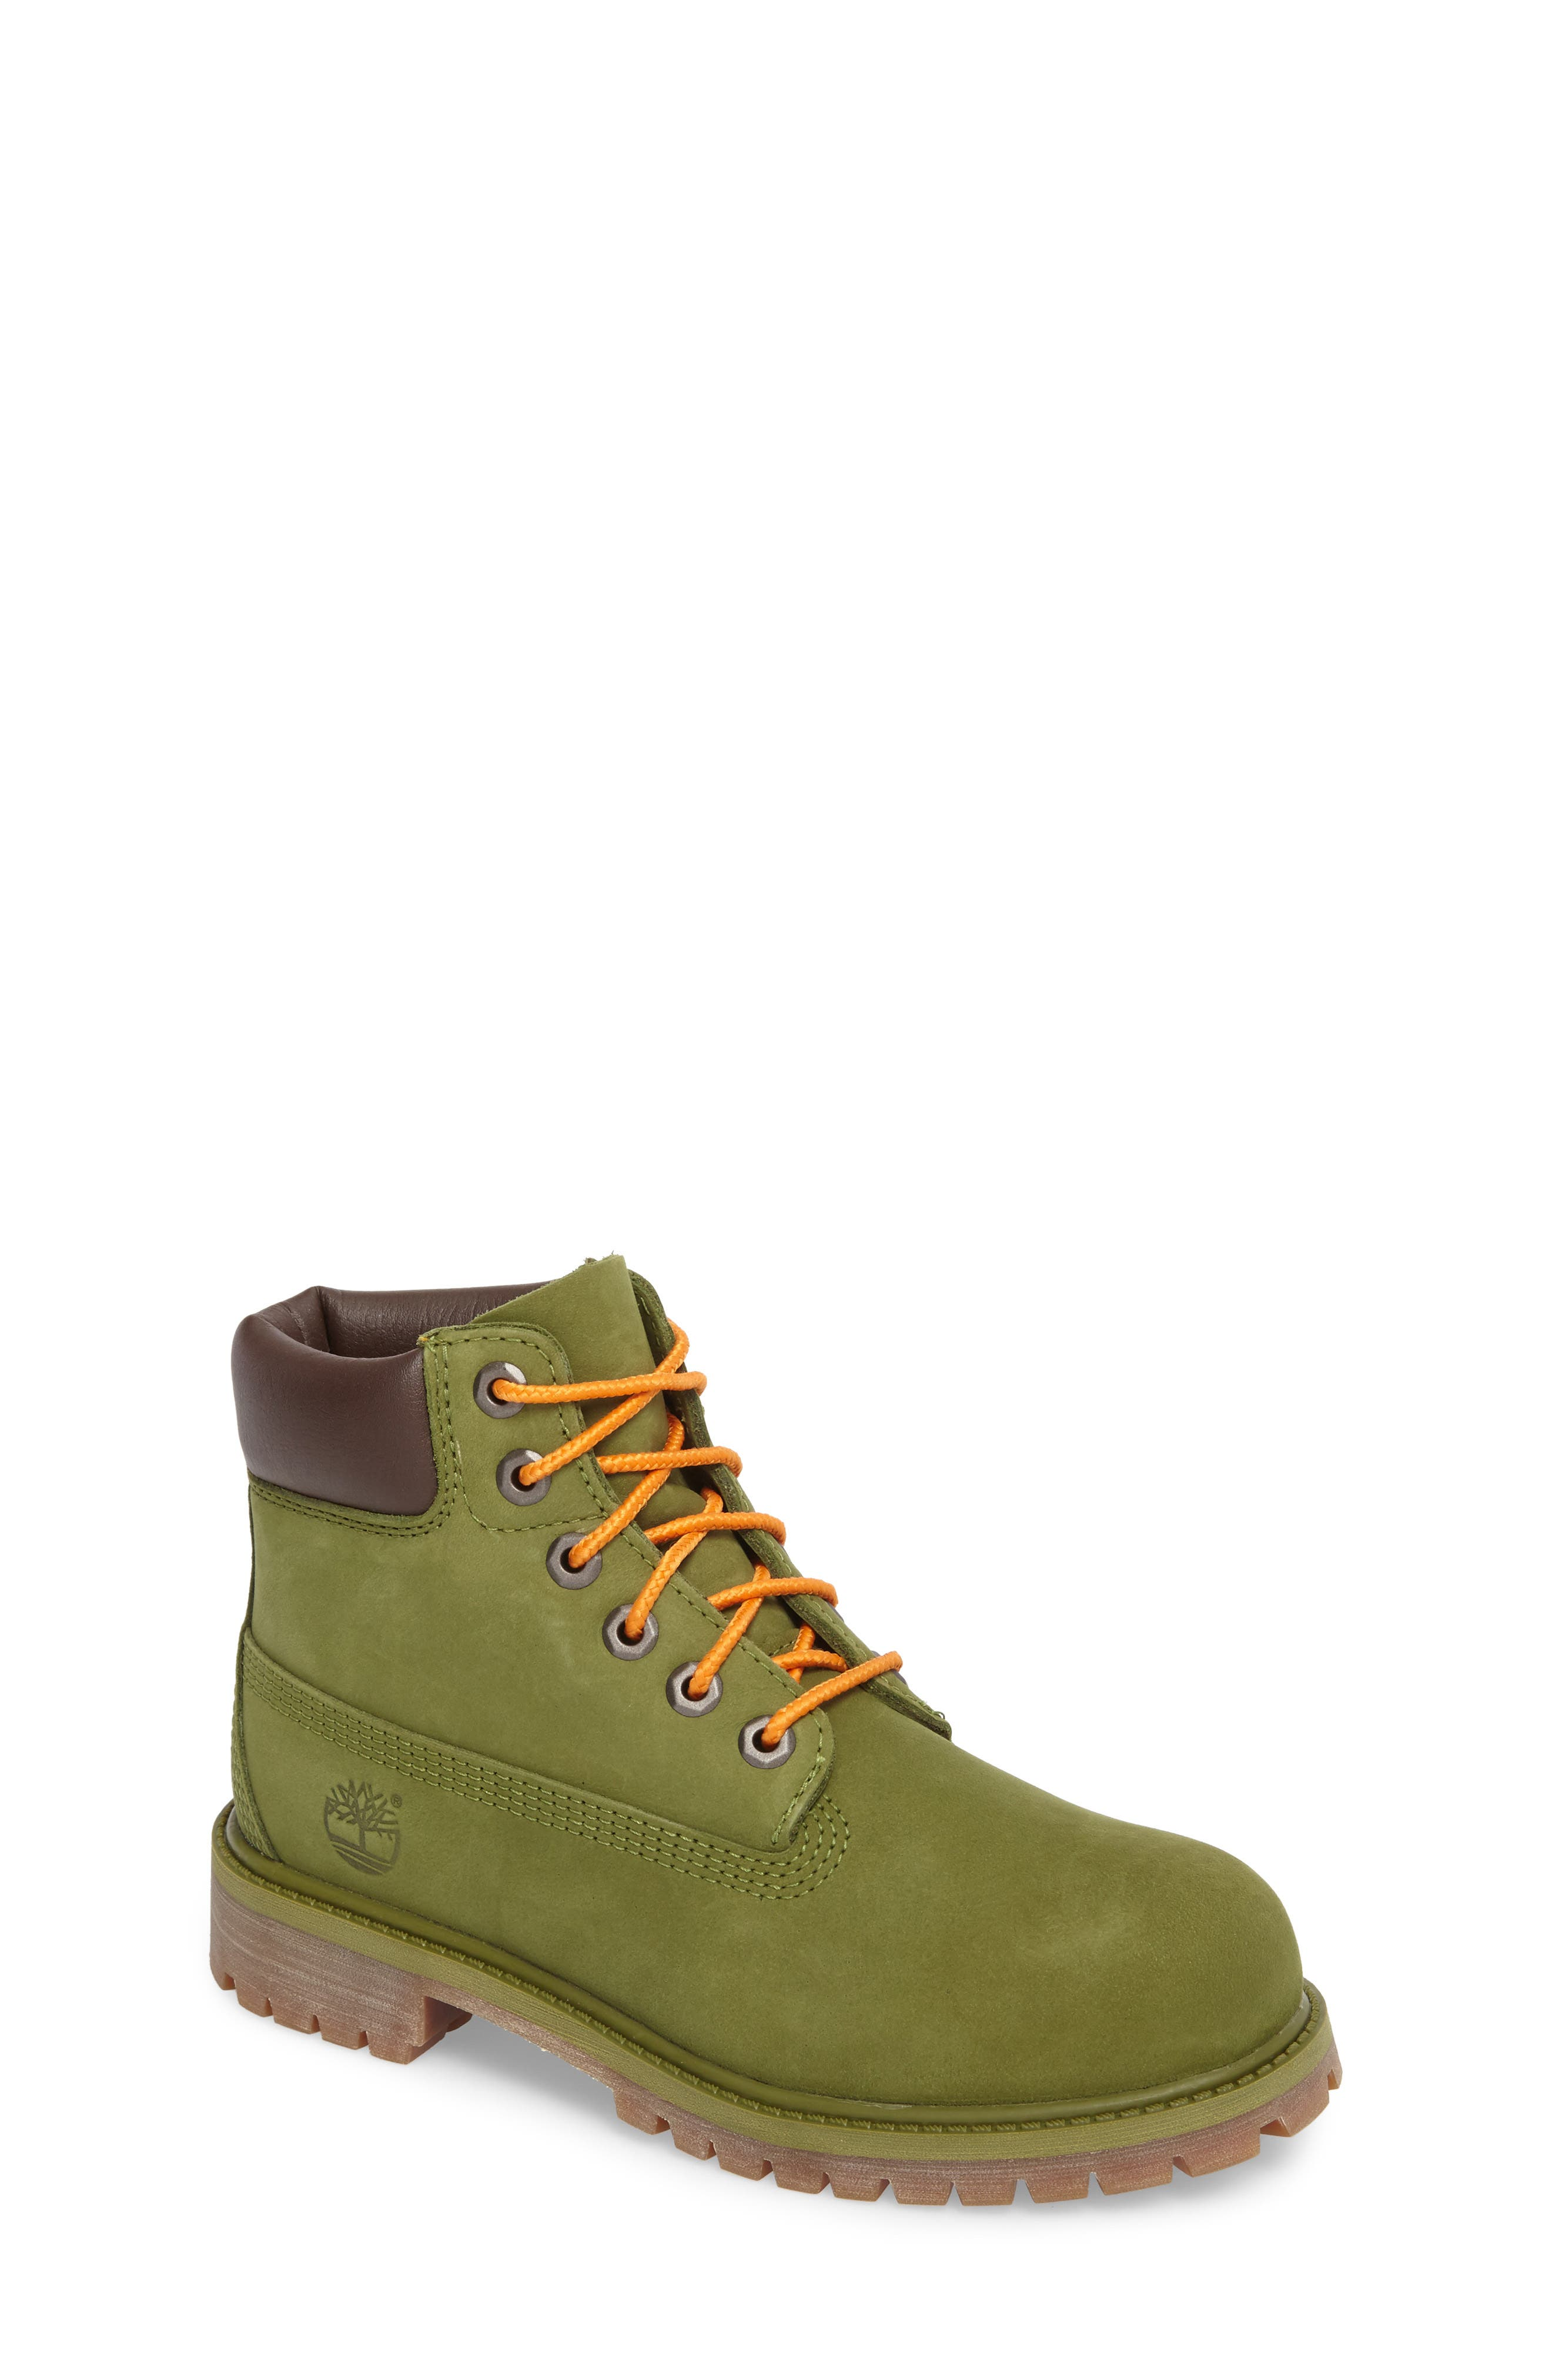 Main Image - Timberland 6-Inch Premium Waterproof Boot (Walker, Toddler, Little Kid & Big Kid)